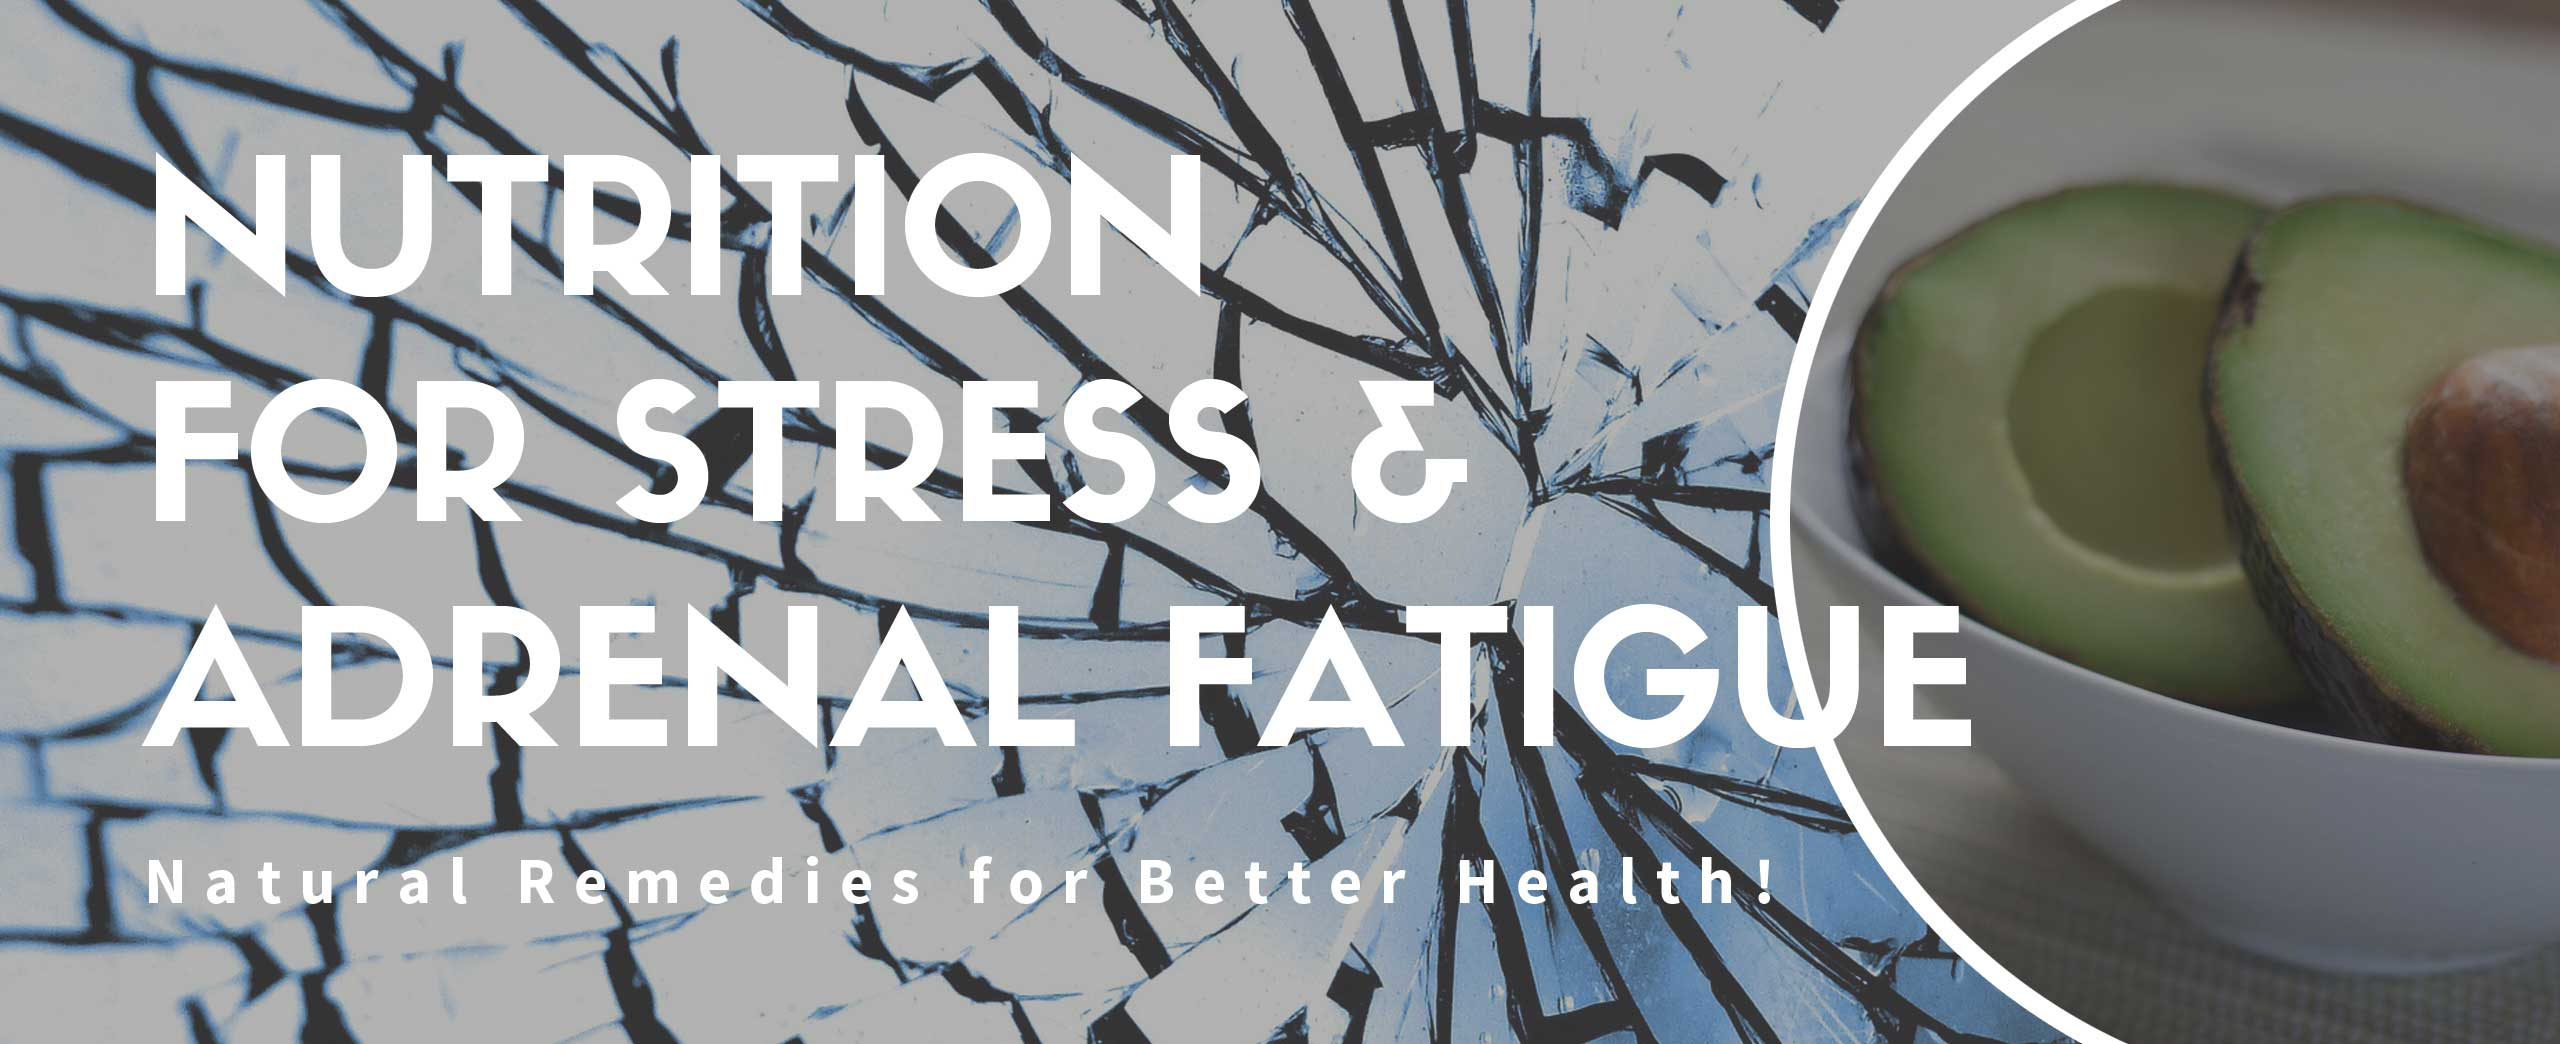 Nutrition - Stress & Adrenal Fatigue - Natural Diet & Fitness Plans - Salvatore DiLiello, N.D. Naturale Solutions, L.L.C